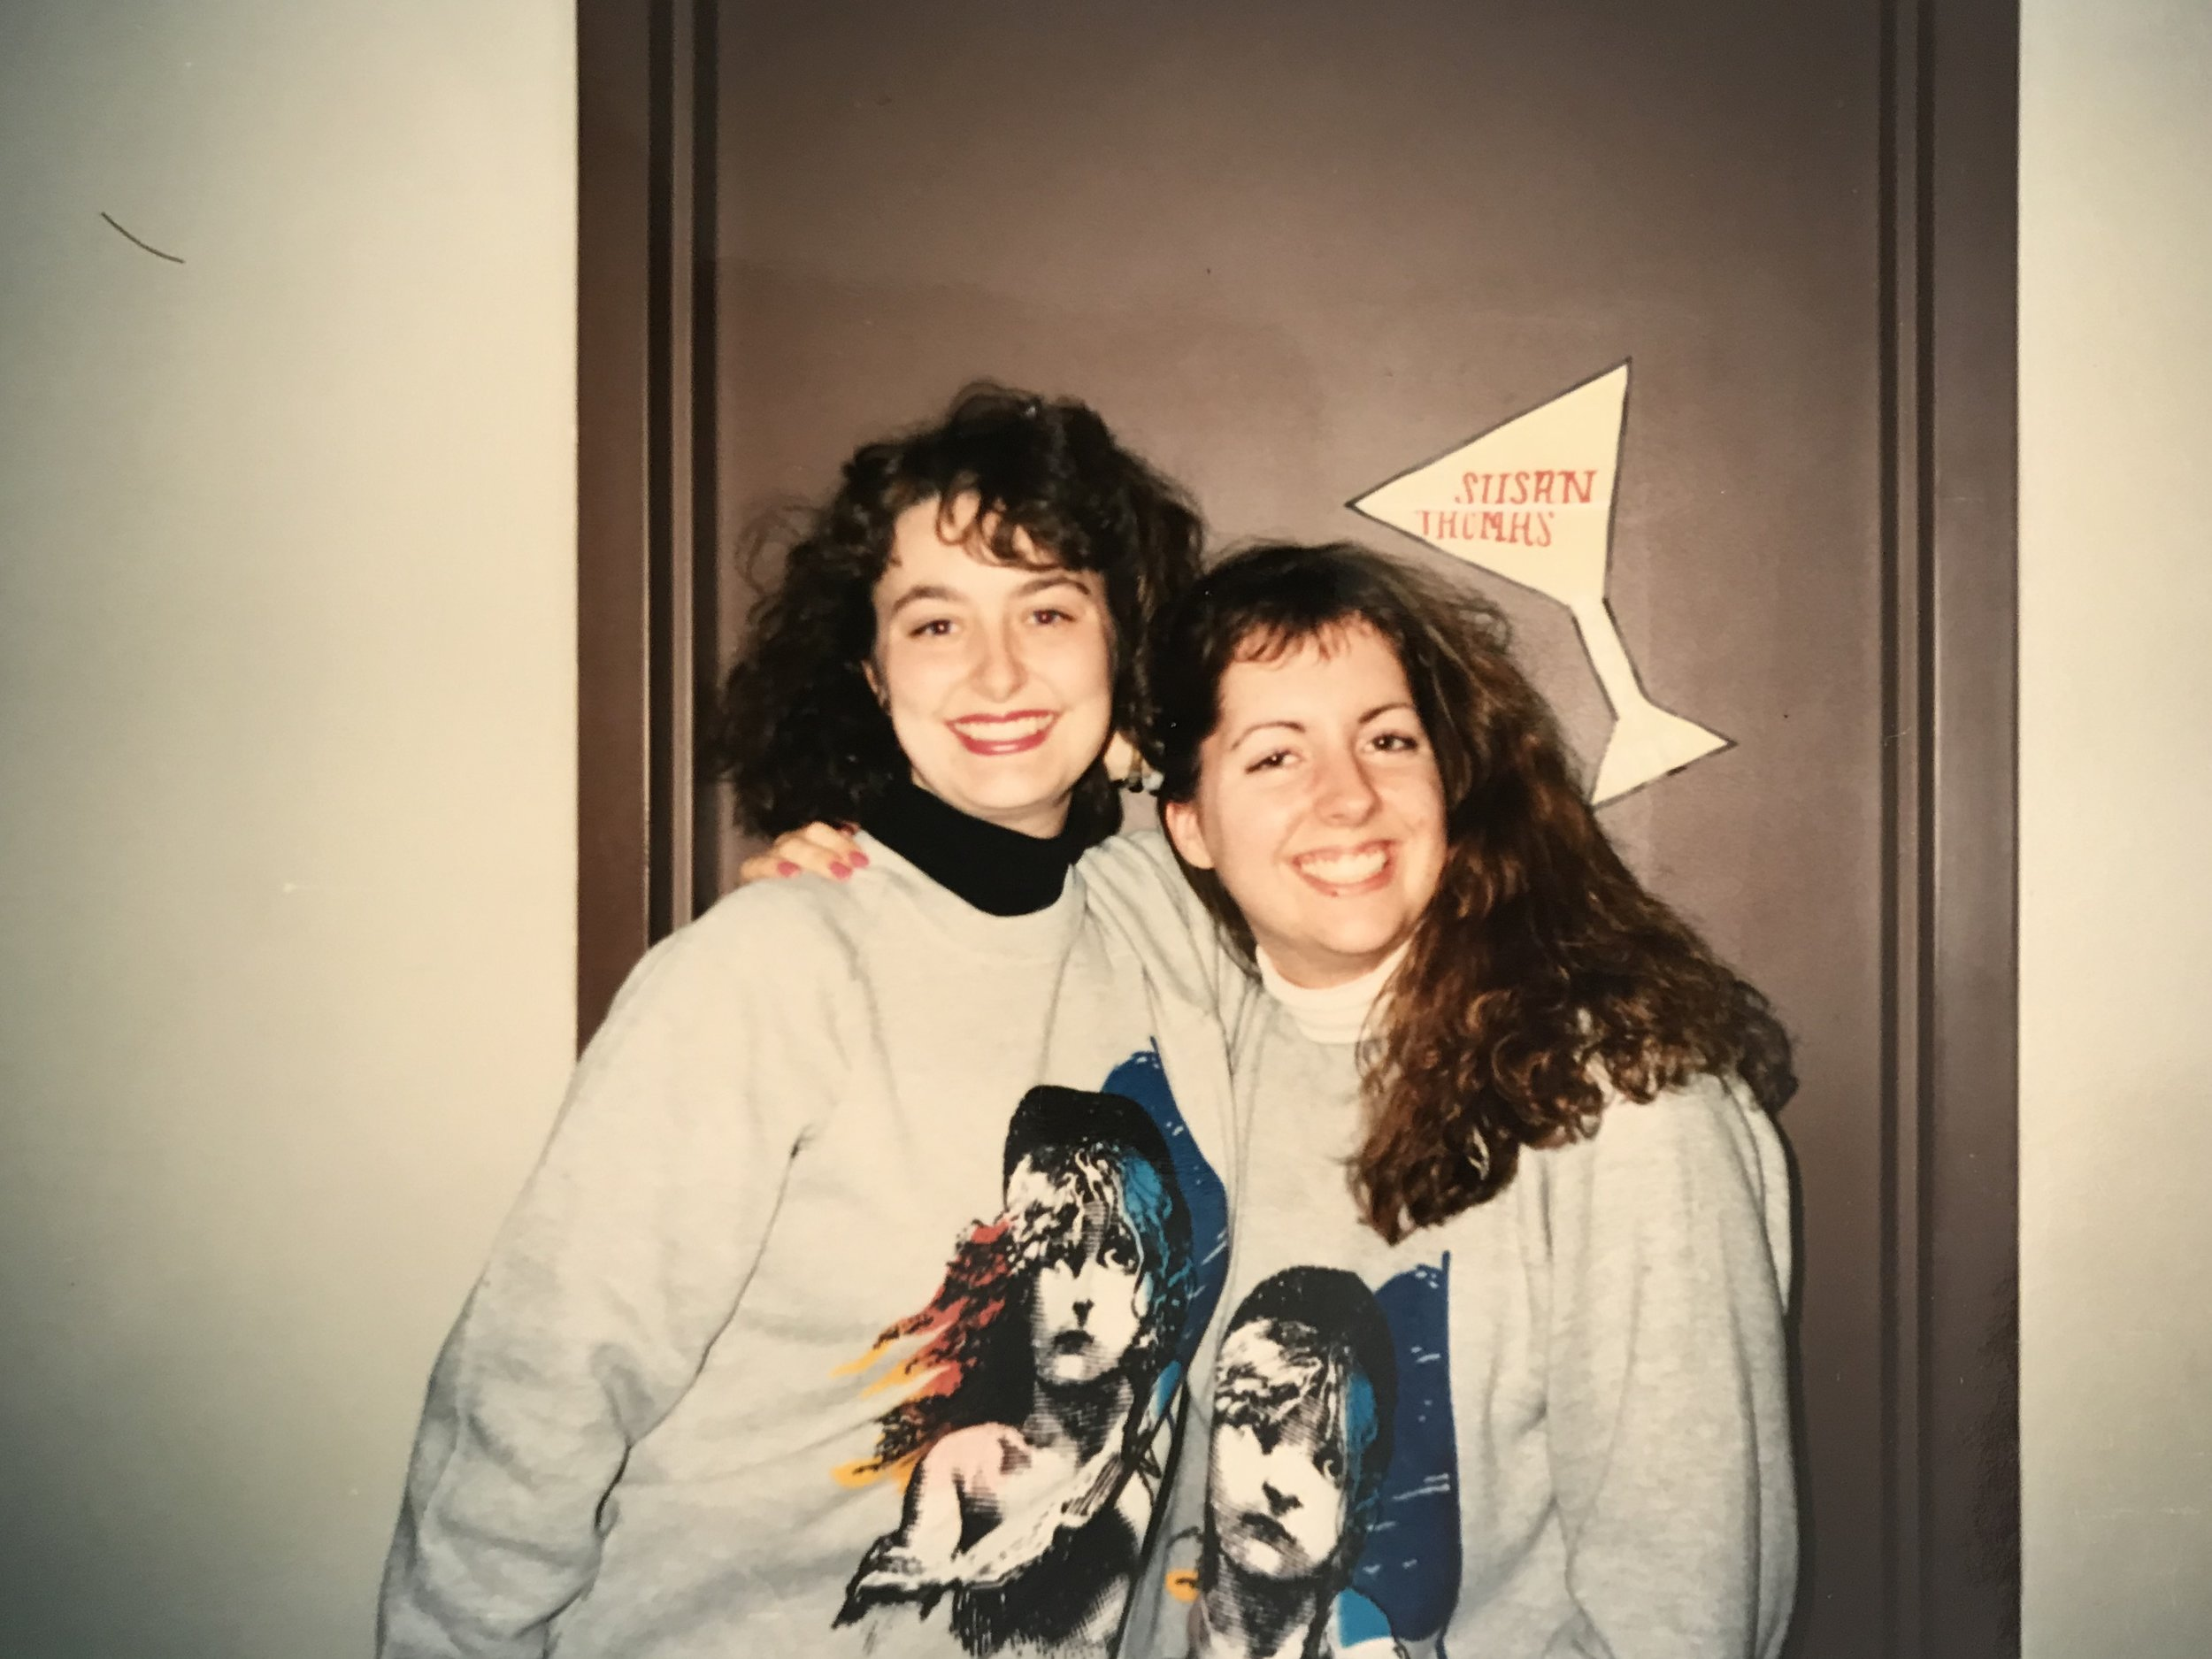 Me and my roommate Susan at the University of Iowa, 1990.